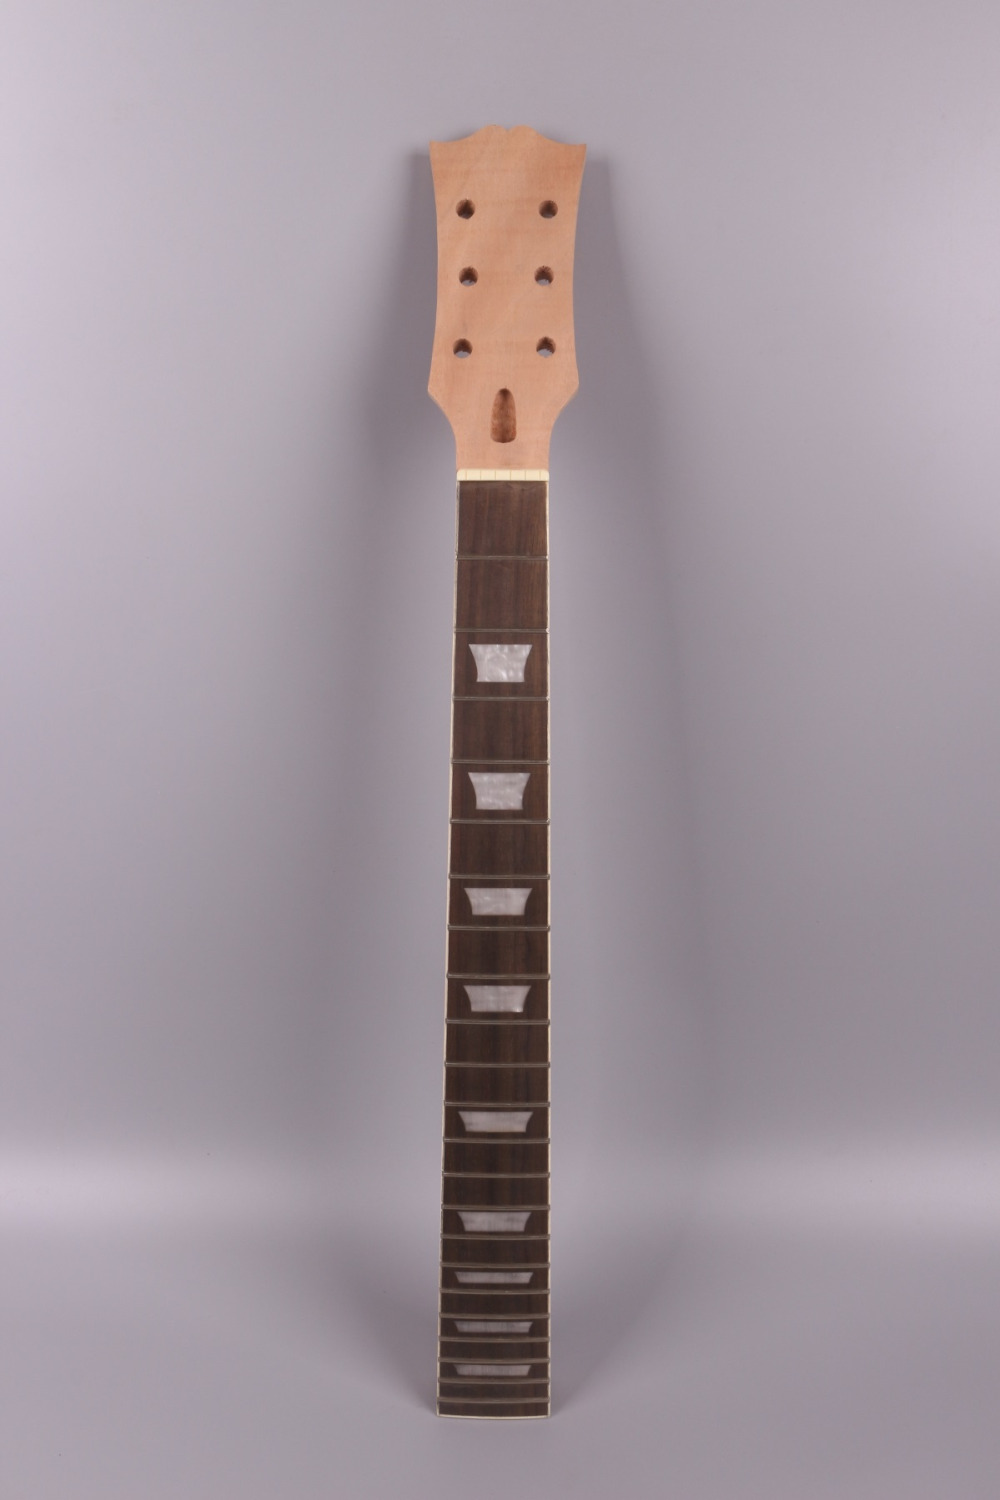 unfinishede electric guitar neck 22 fret Locking nut 628mm mahogany made and rosewood fingerboard unfinishede electric guitar neck 22 fret locking nut 628mm mahogany made and rosewood fingerboard